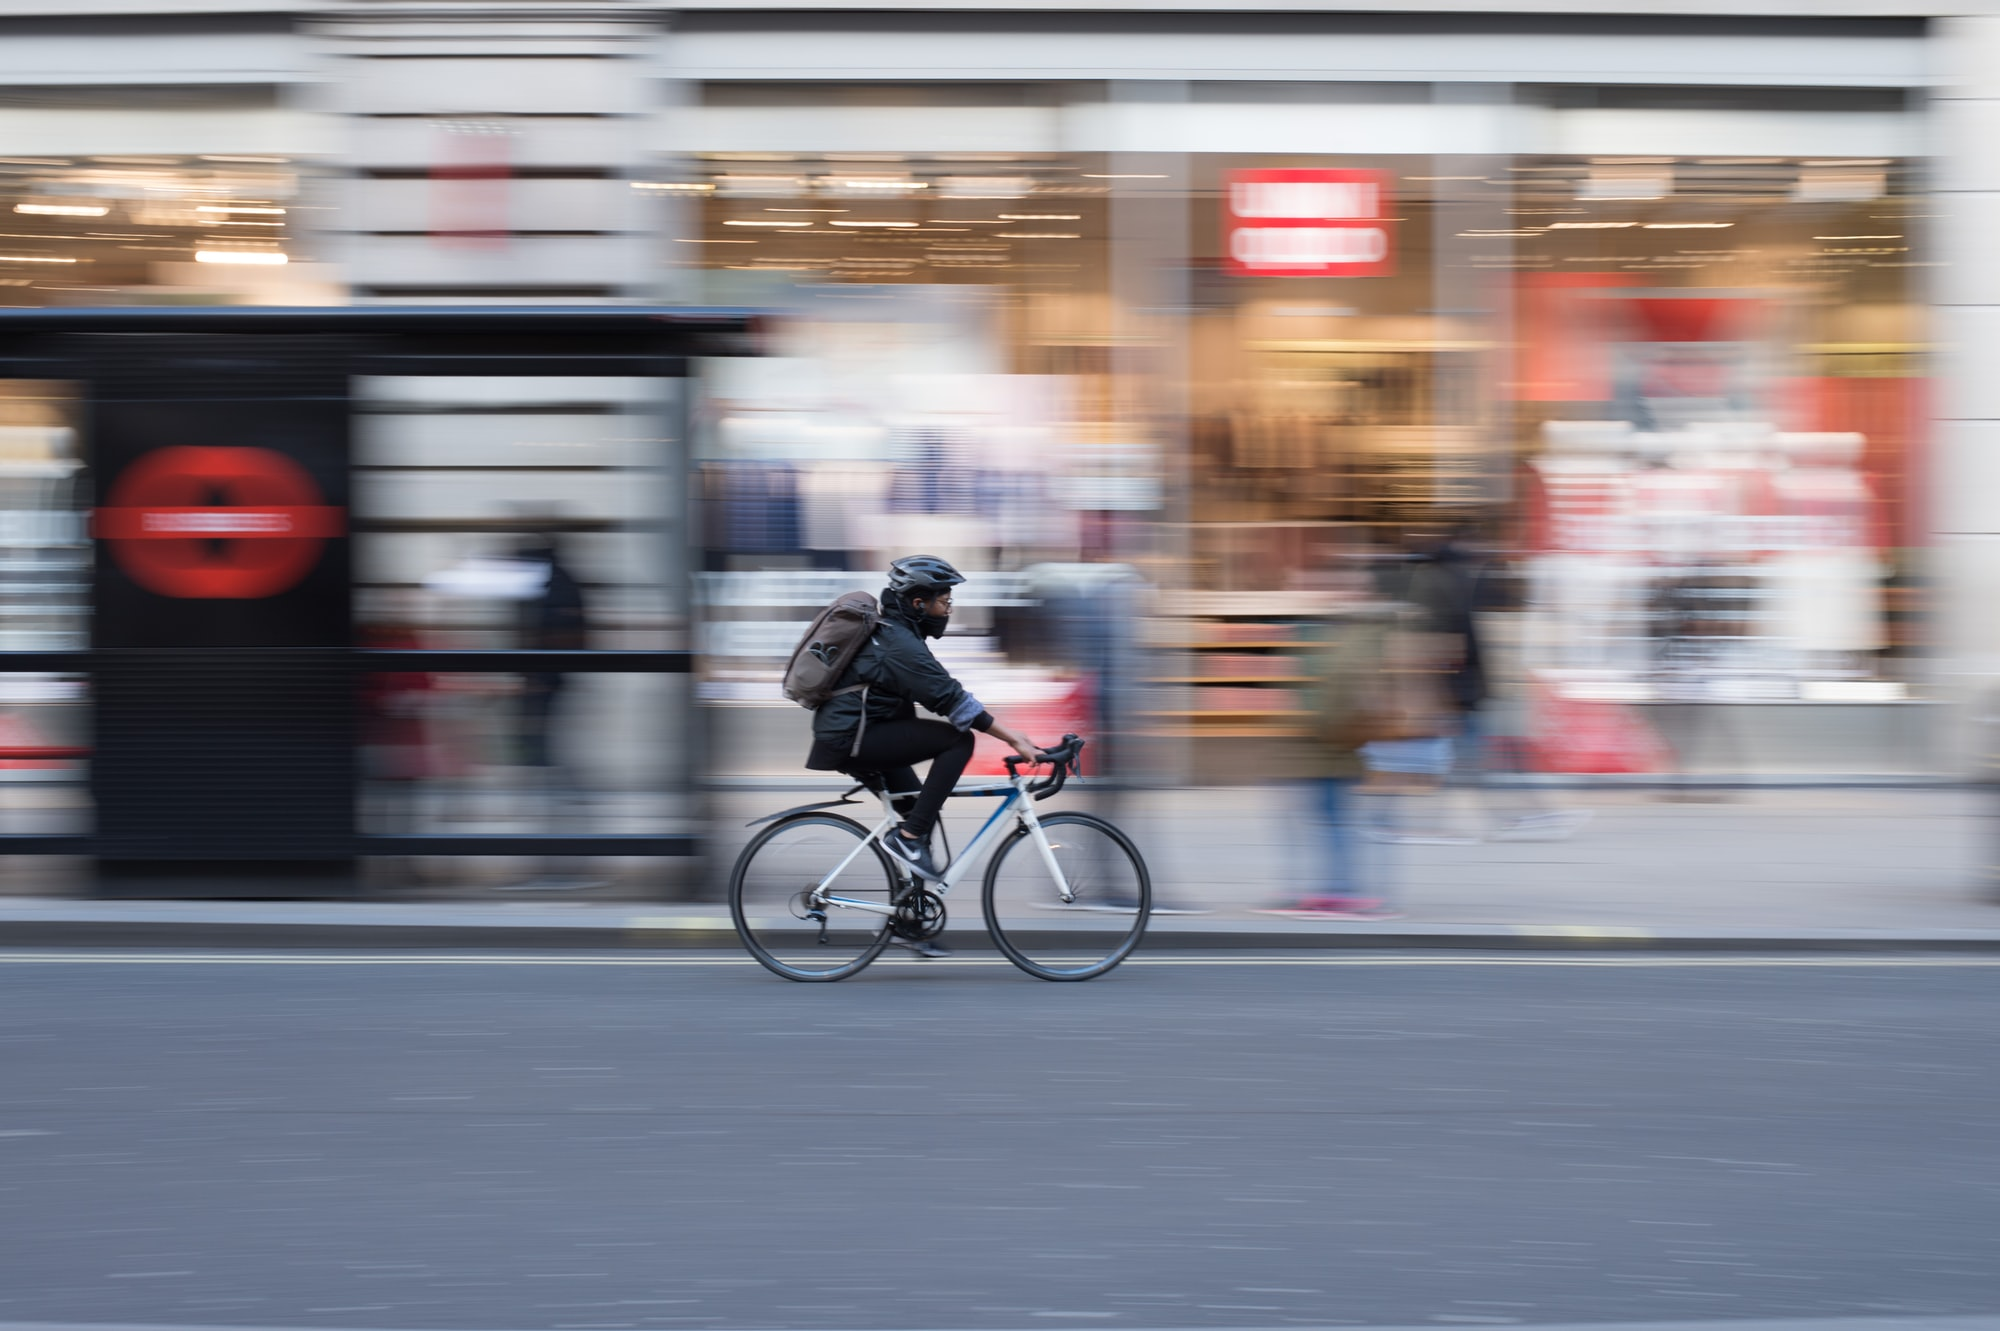 How to prepare for cycling to work after the lockdown